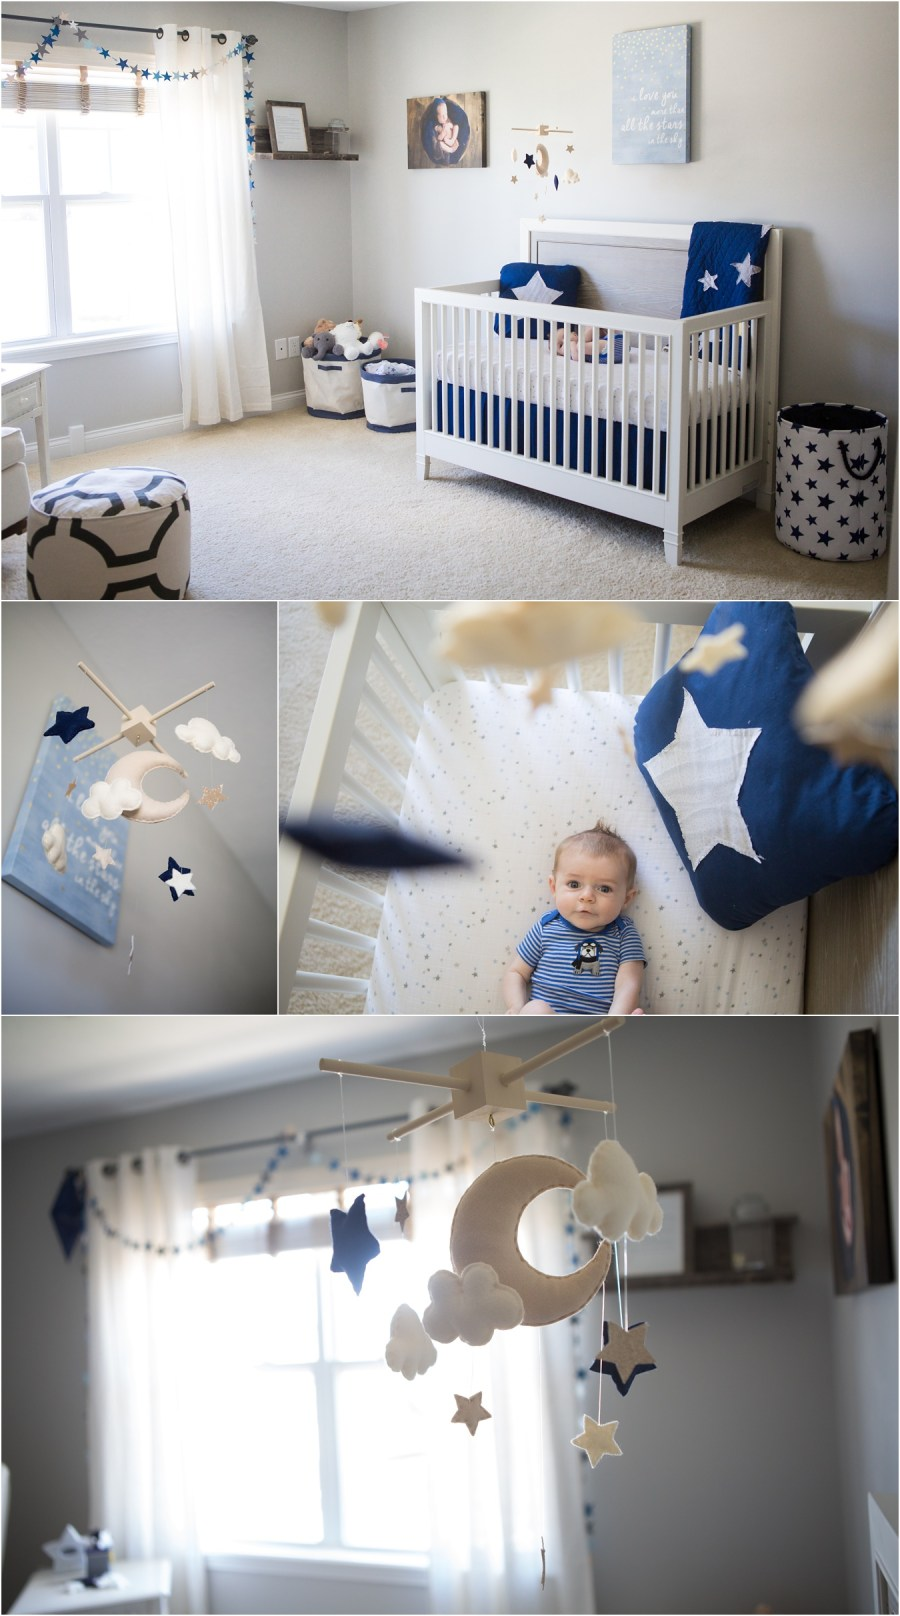 adorable crib for boy's nursery - star and moon themed nursery